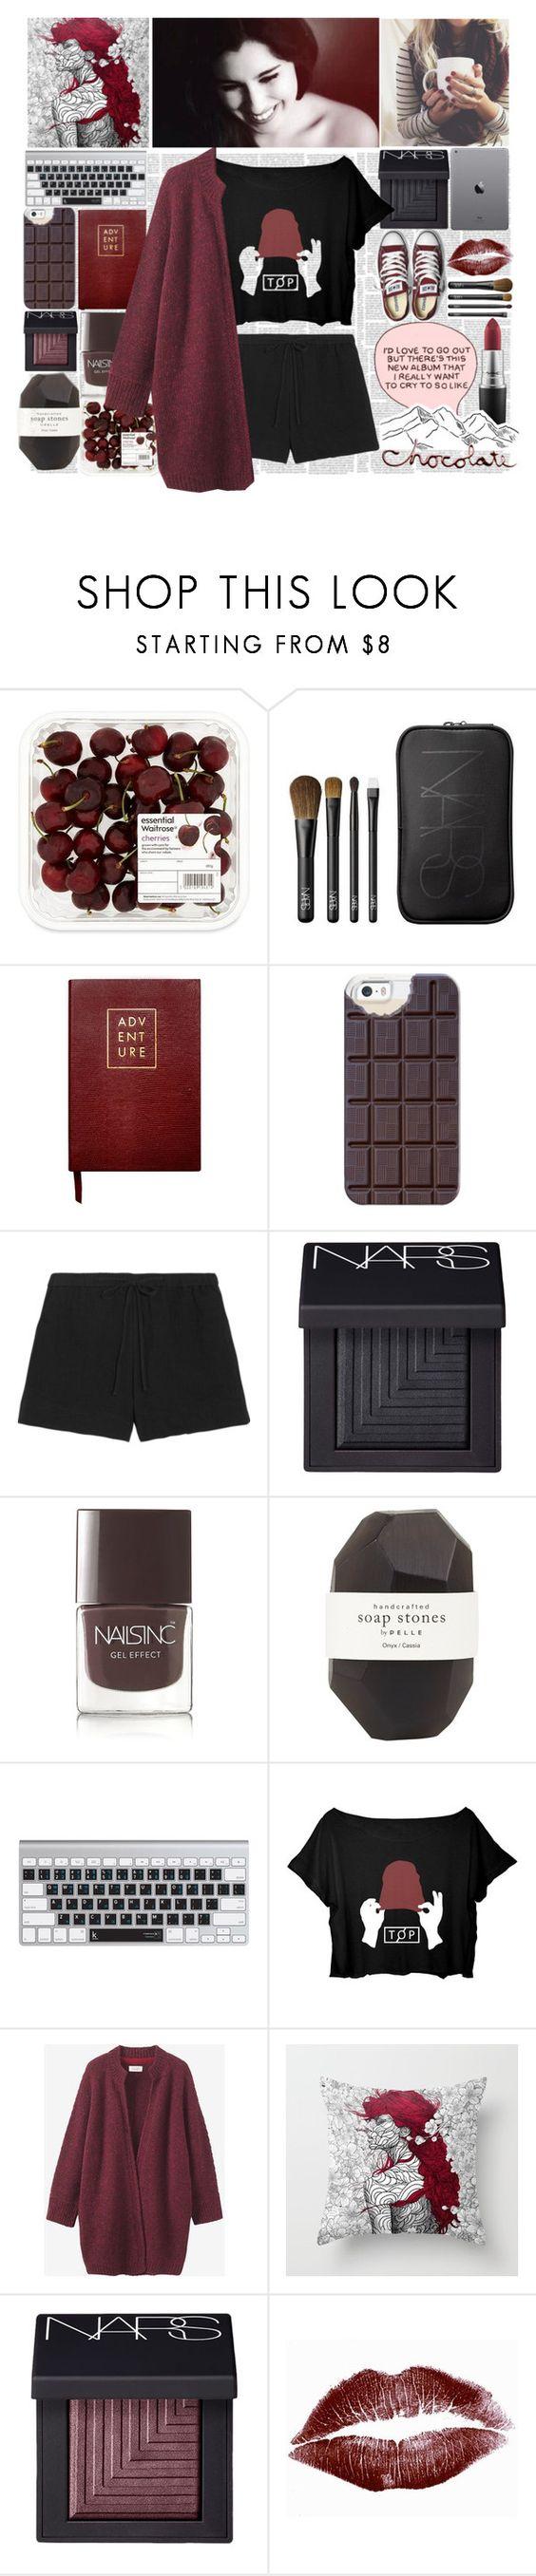 """What Fresh Hell Is This"" by nsrogsy3 ❤ liked on Polyvore featuring NARS Cosmetics, Sloane Stationery, Casetify, Converse, Skin, Nails Inc., Pelle, Toast, MAC Cosmetics and AllYallRachet"